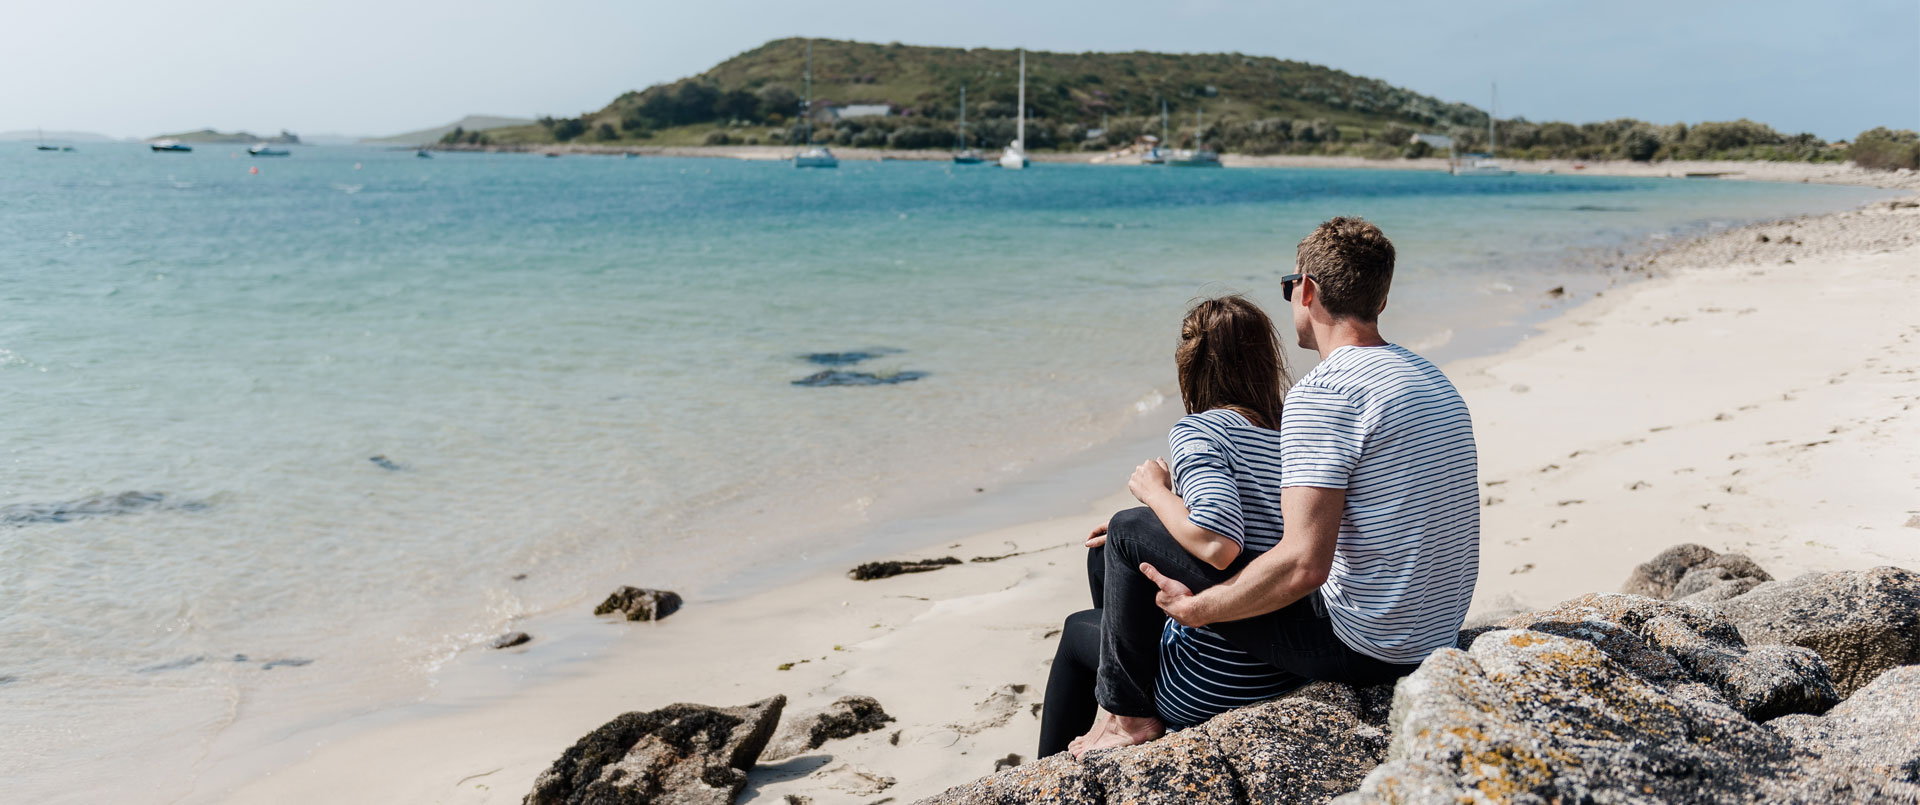 Couple looking out to sea from a beach on Bryher, Isles of Scilly